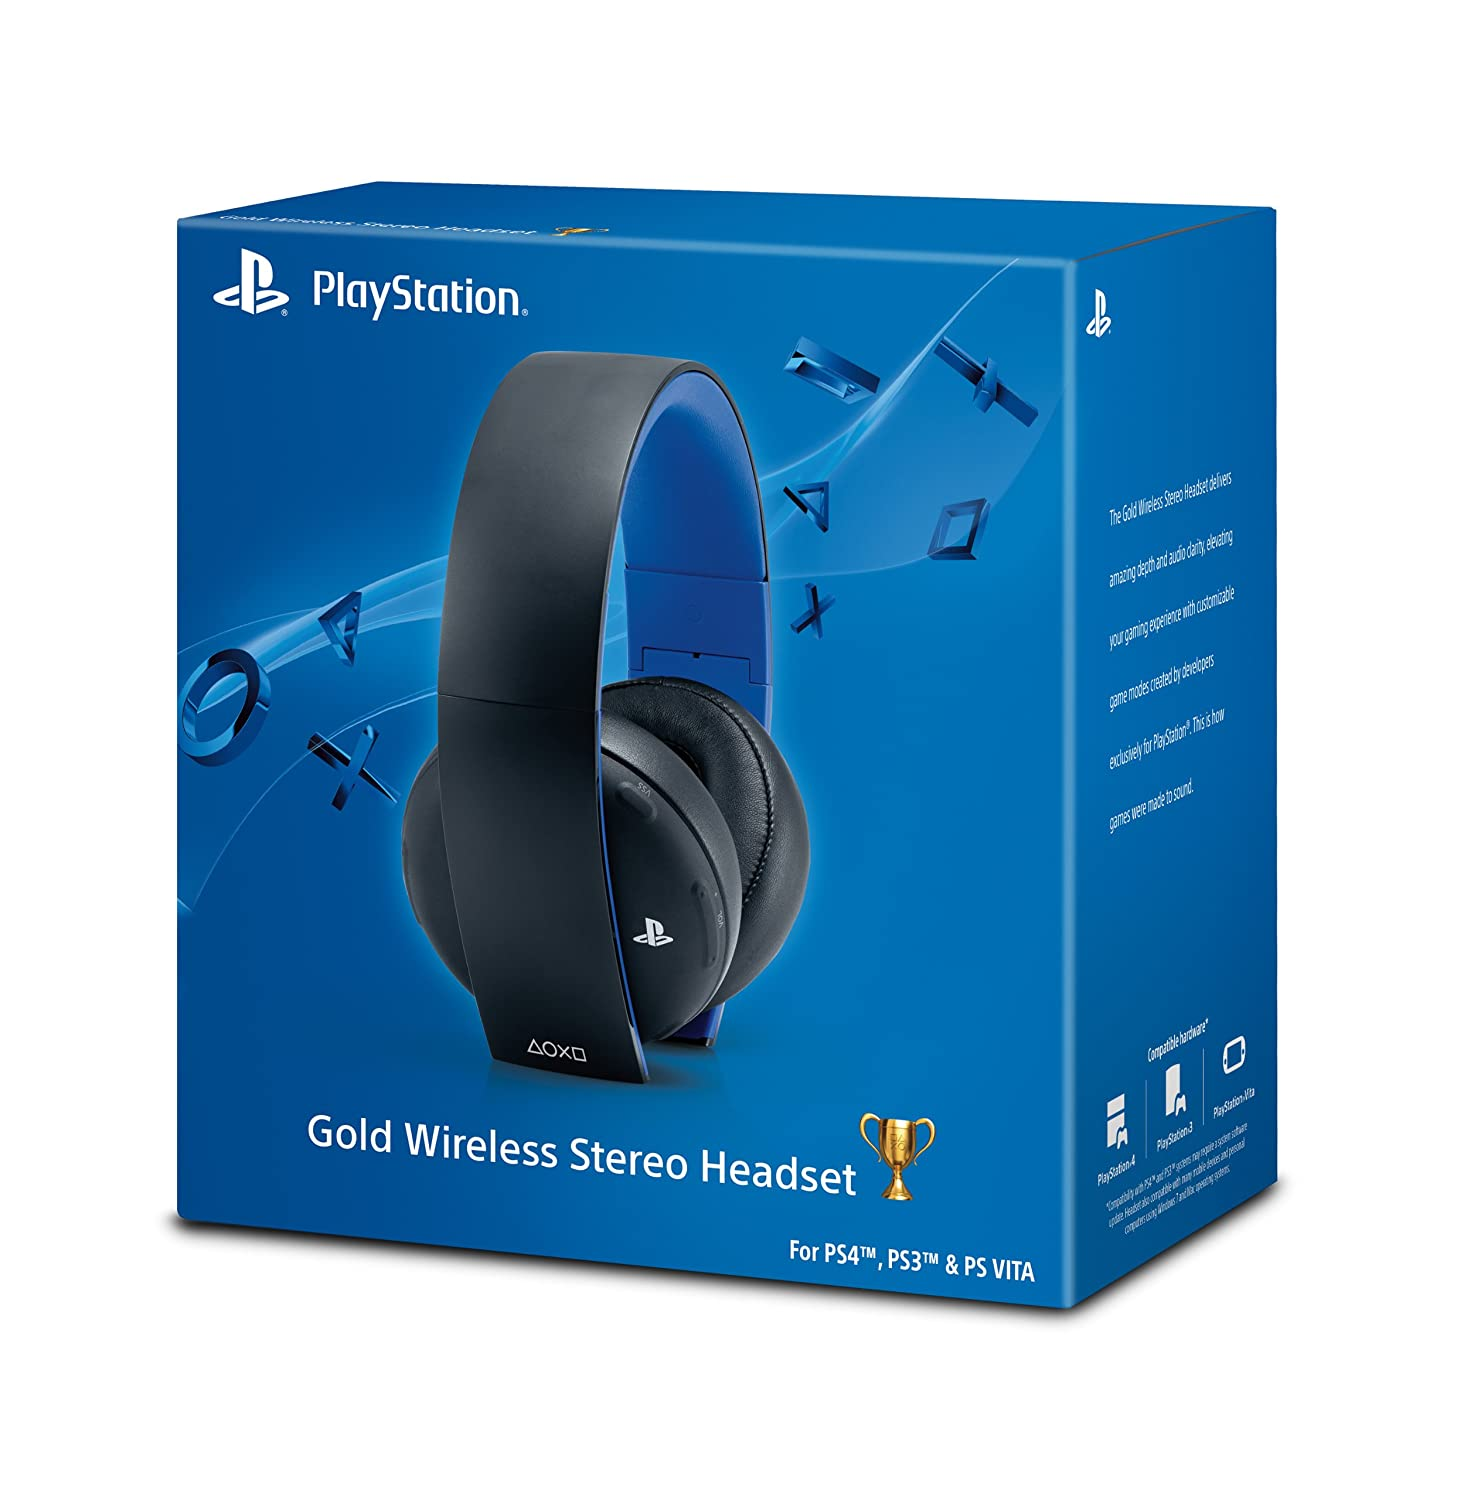 PlayStation Gold Wireless Stereo Headset vs. Pulse Elite Edition Wireless Stereo Headset comparison